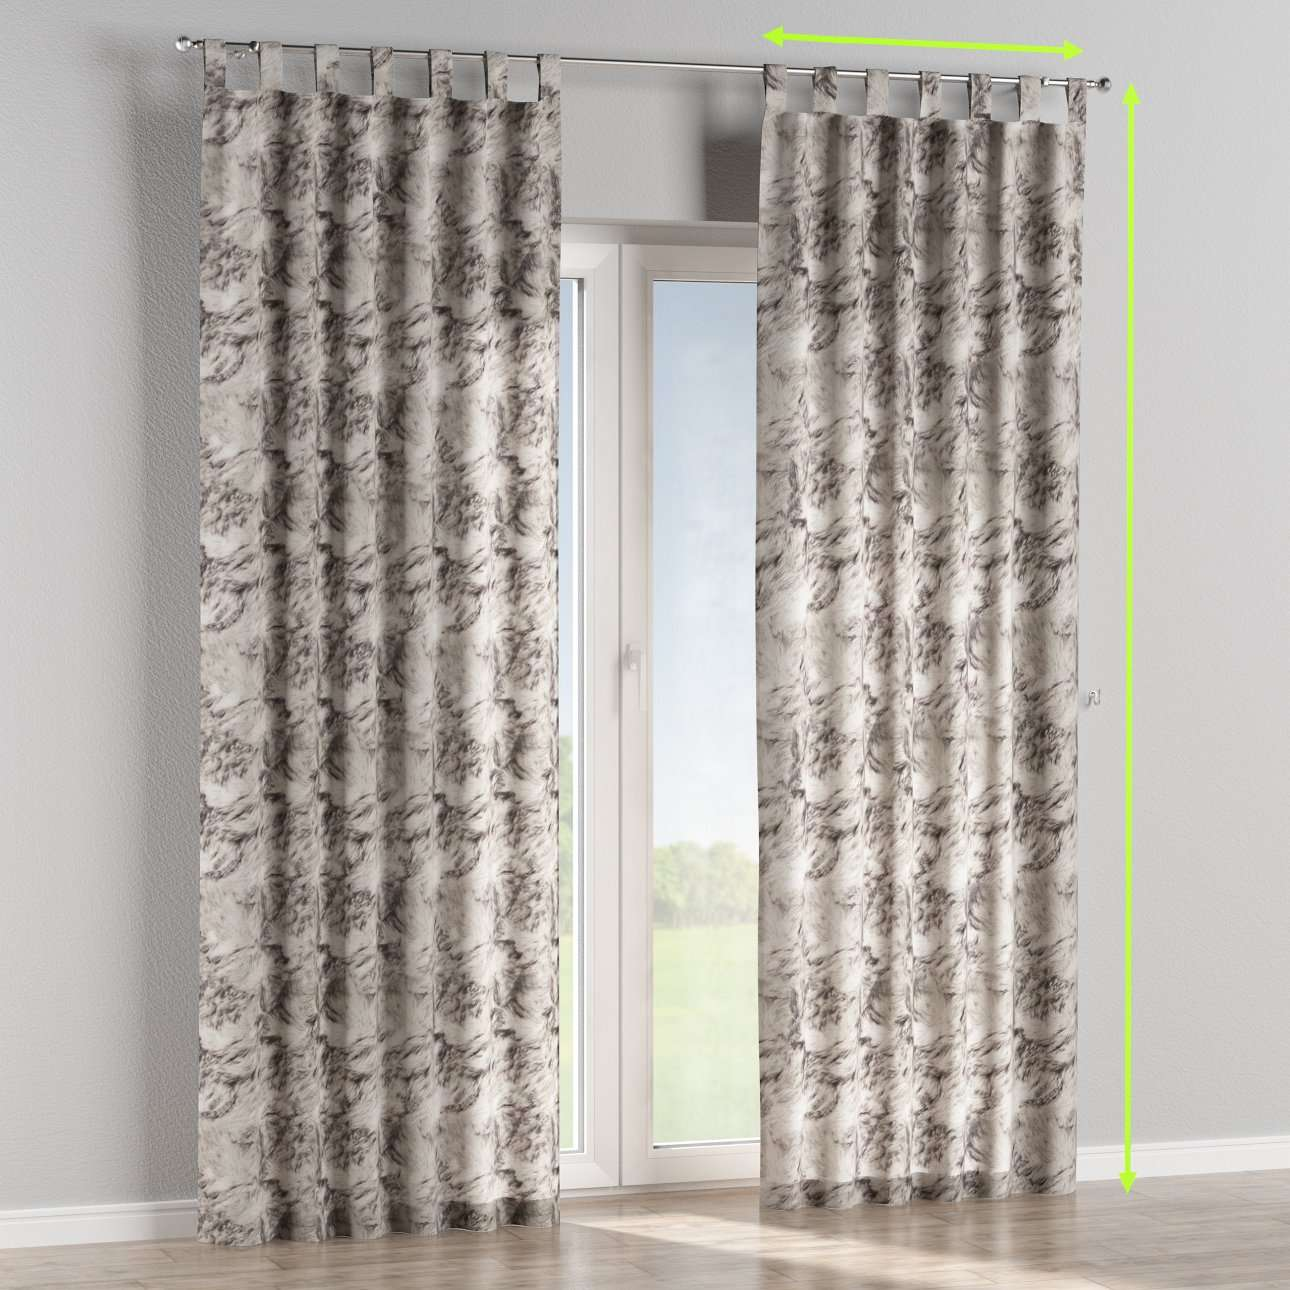 Tab top curtains in collection Norge, fabric: 140-82